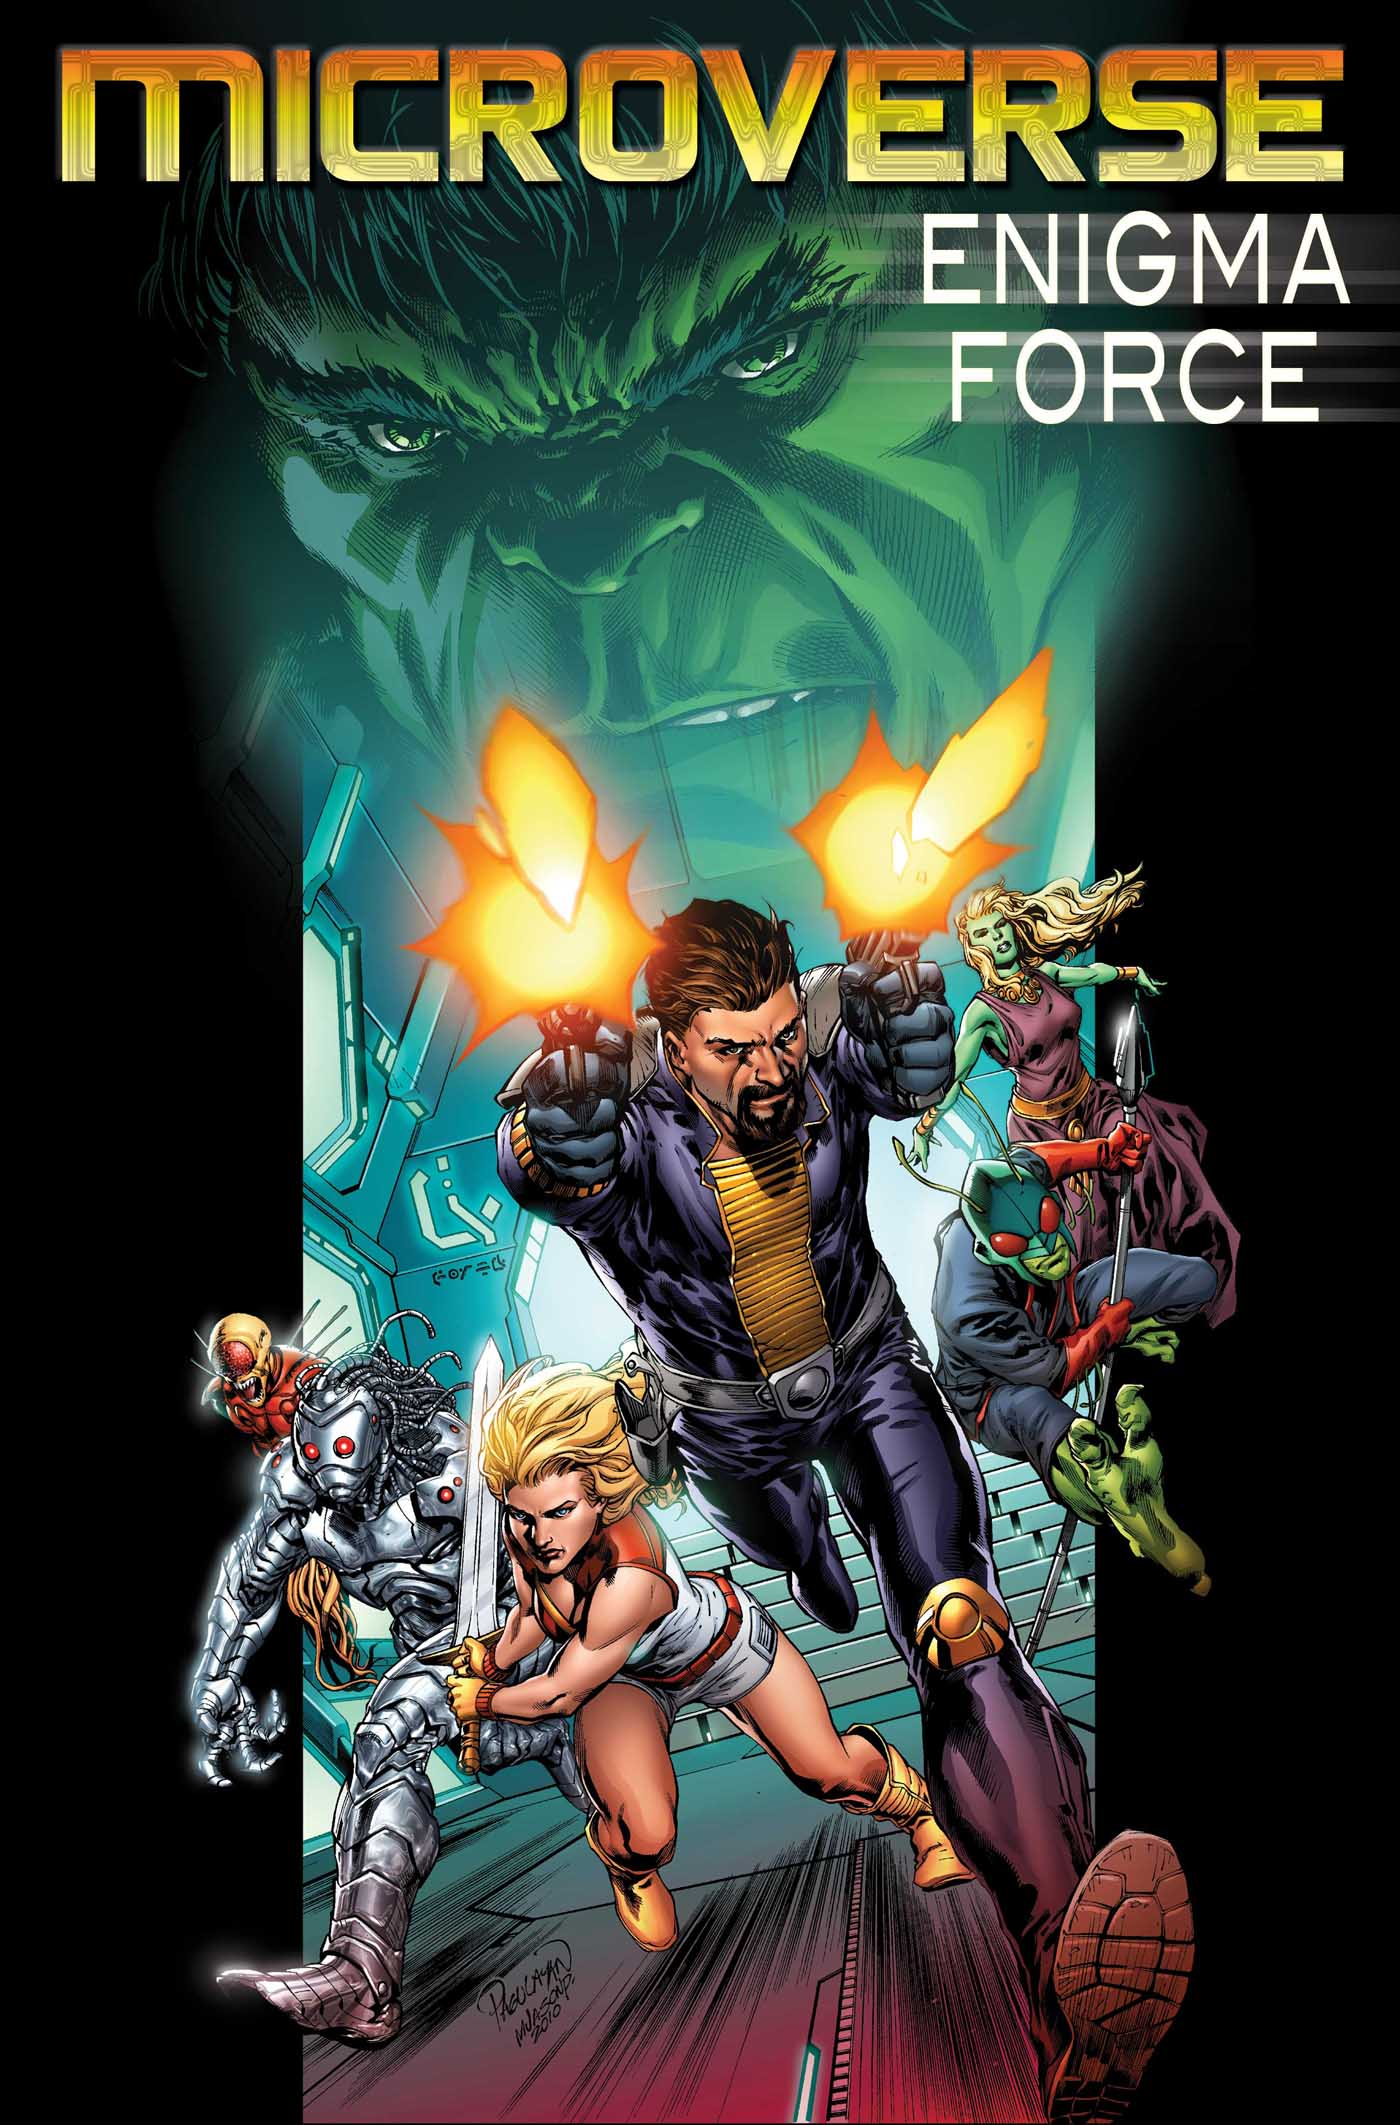 Microverse: Enigma Force (2010) #1